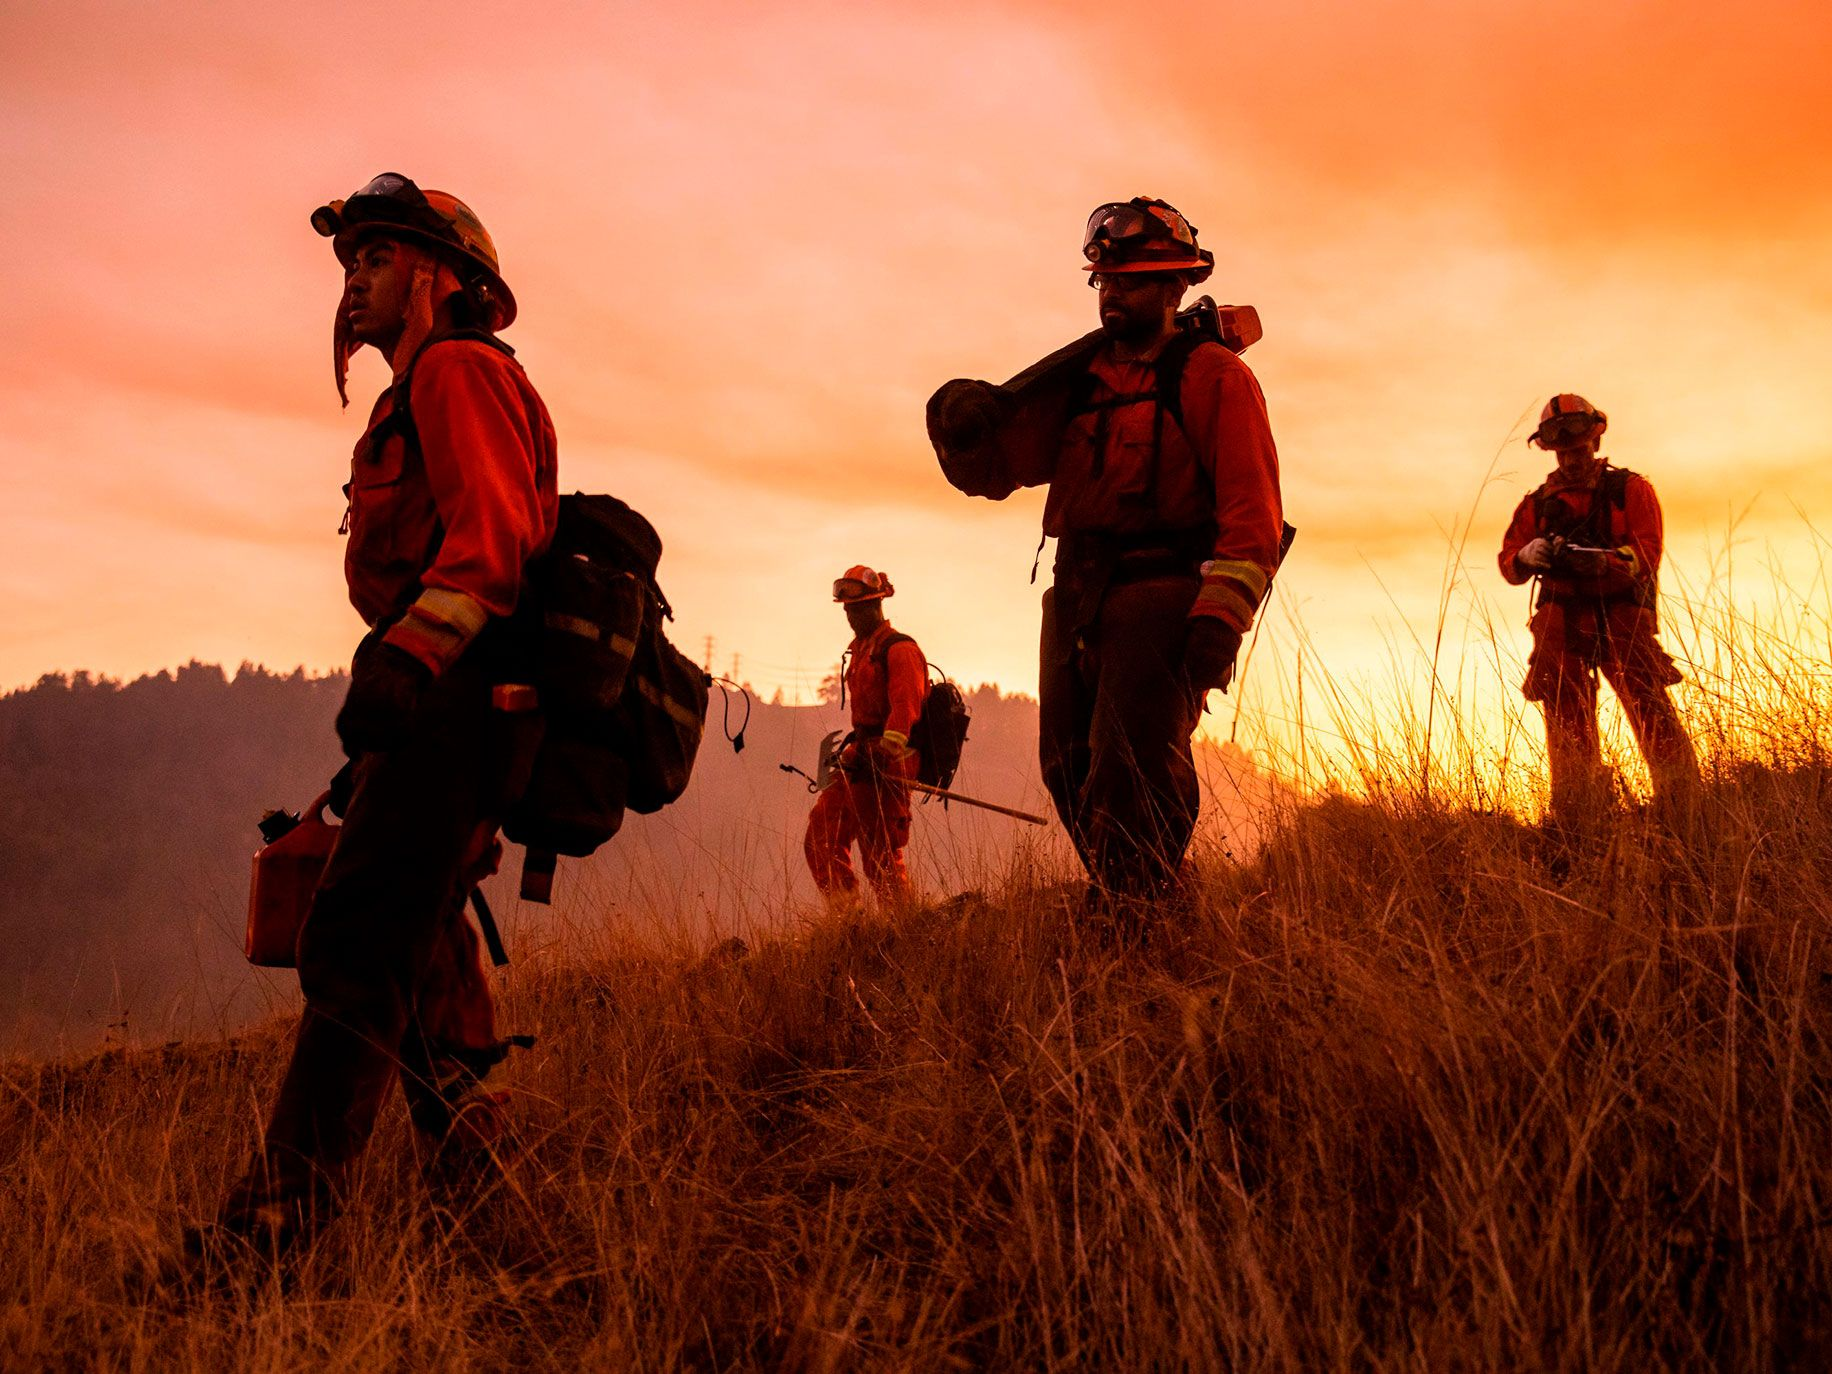 A crew of inmate firefighters make their way to firefighting operations to battle the Kincade Fire in Healdsburg, California on October 26, 2019. - US officials on October 26 ordered about 50,000 people to evacuate parts of the San Francisco Bay area in California as hot dry winds are forecast to fan raging wildfires.